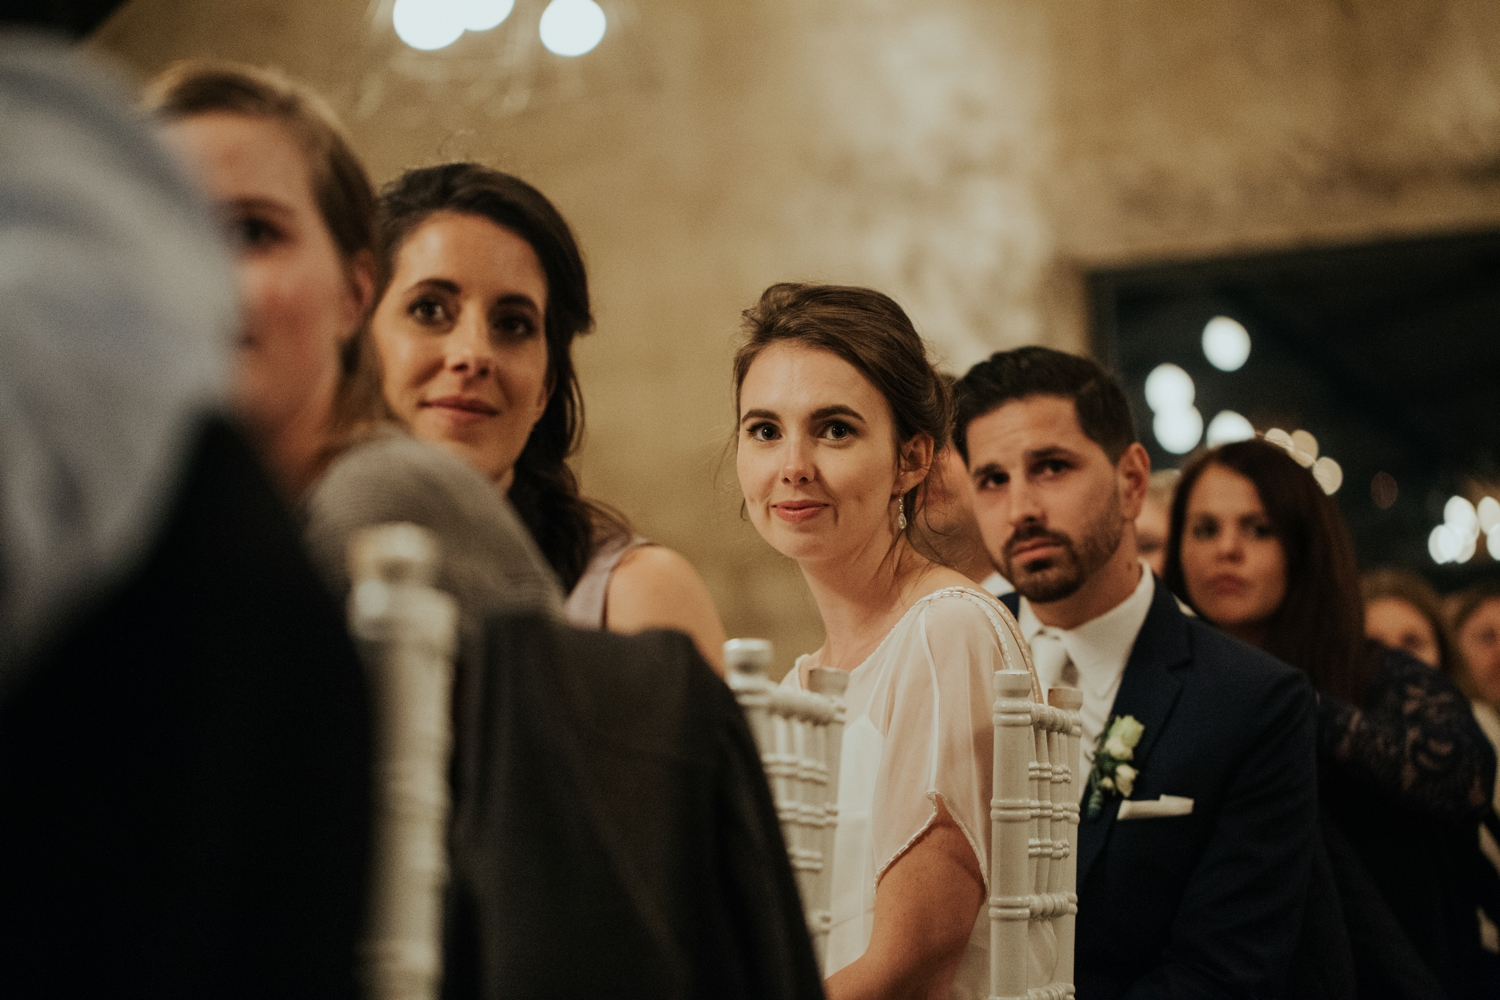 Bride and groom laugh with their guests during speeches at their alternative wedding in Vancouver